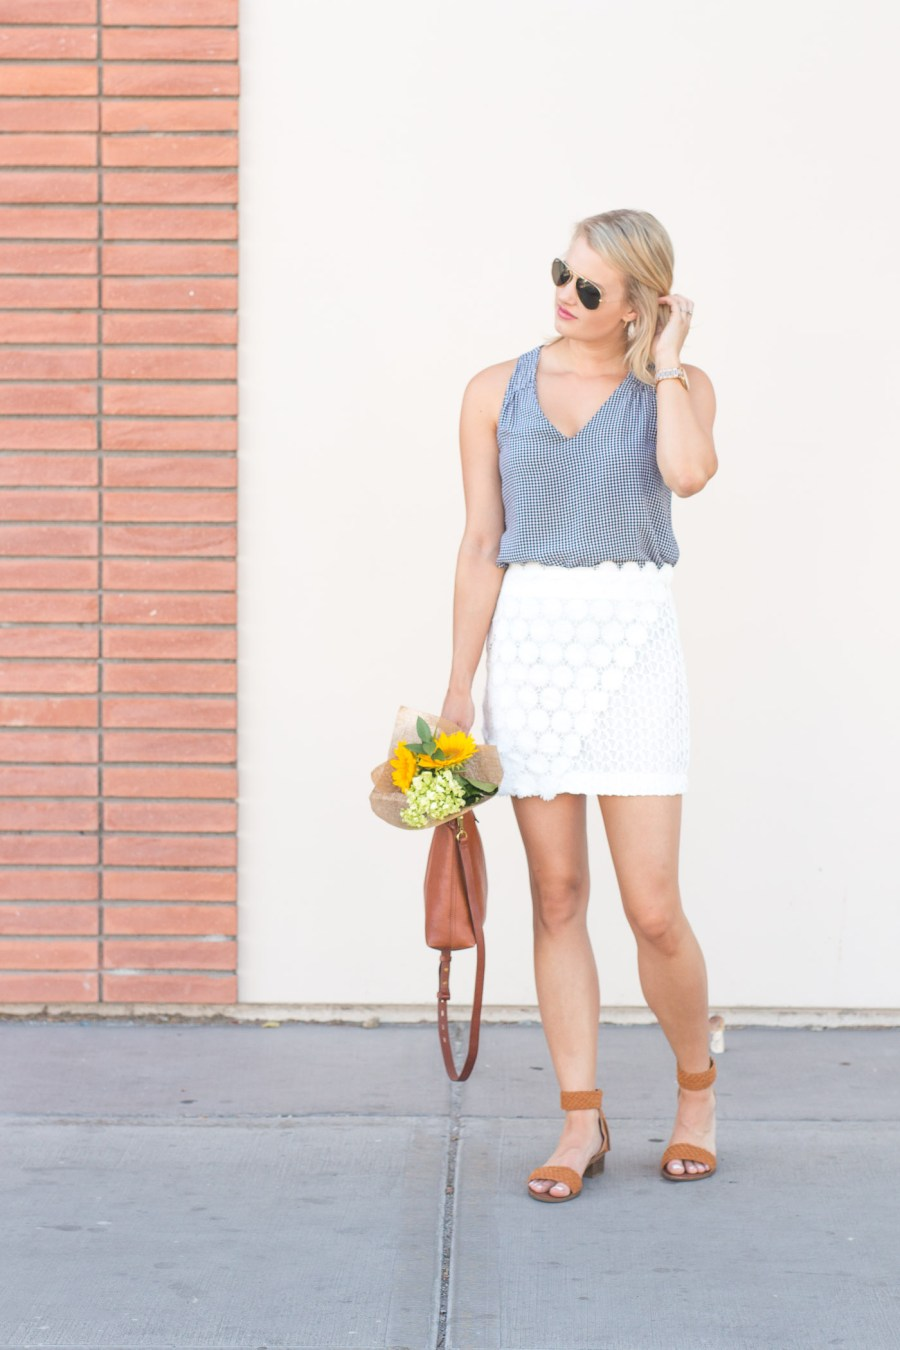 how to wear a white skirt on your period